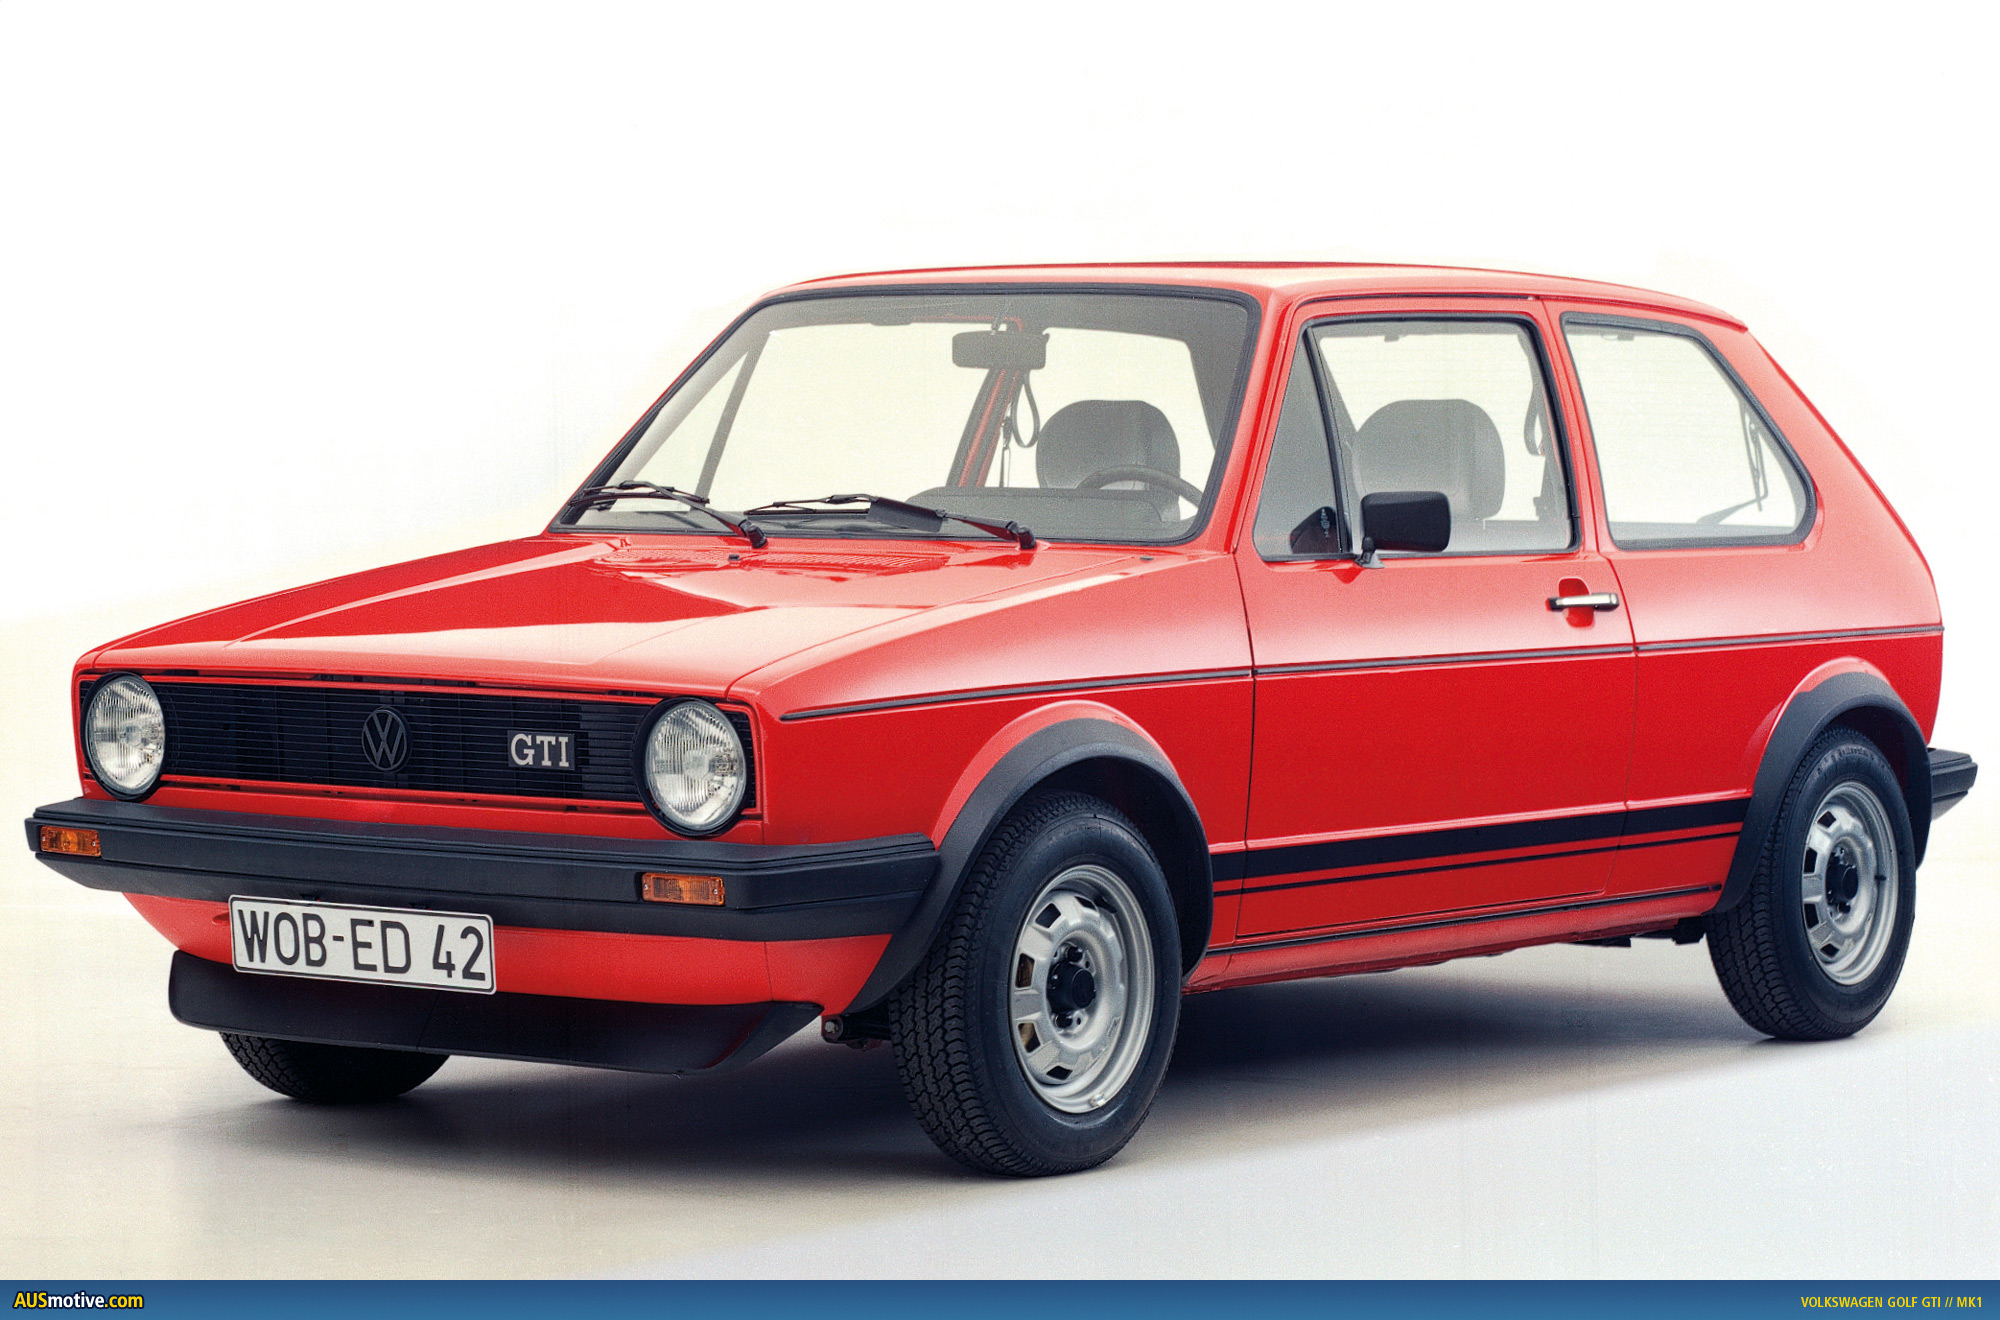 of the iconic Mk1 Golf GTI